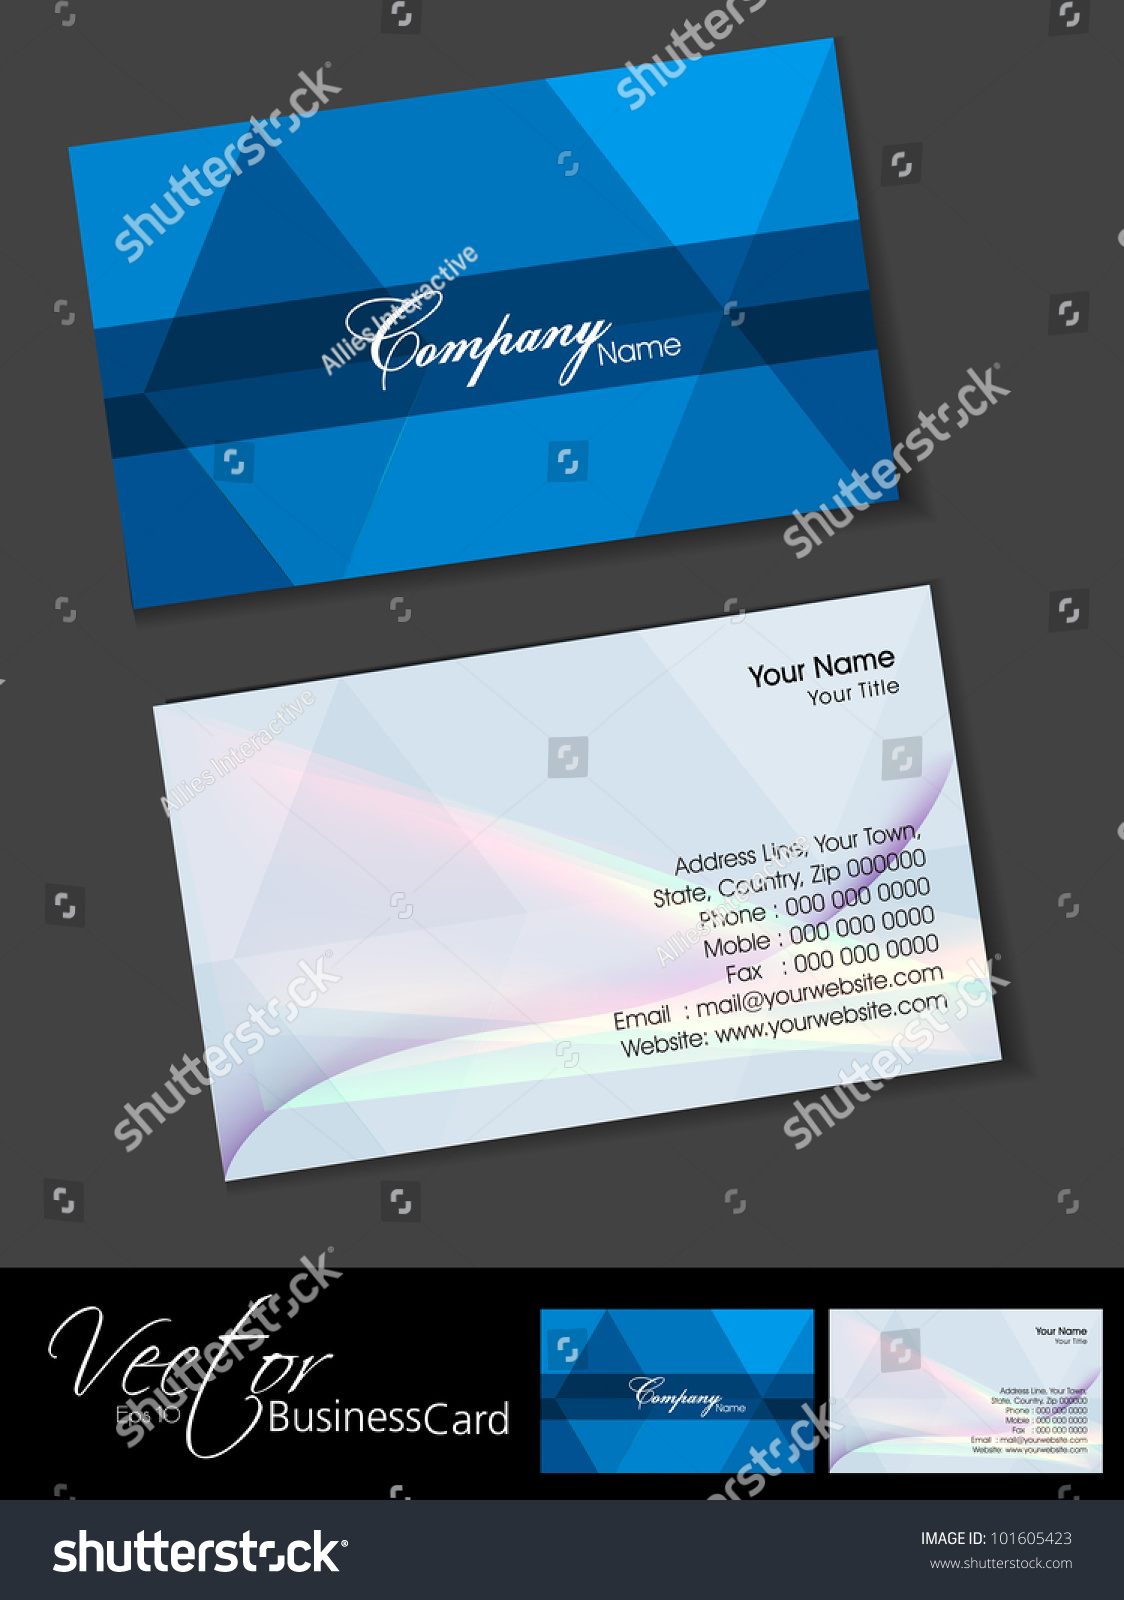 Professional Business Cards Template Visiting Card Stock Vector - Professional business card template